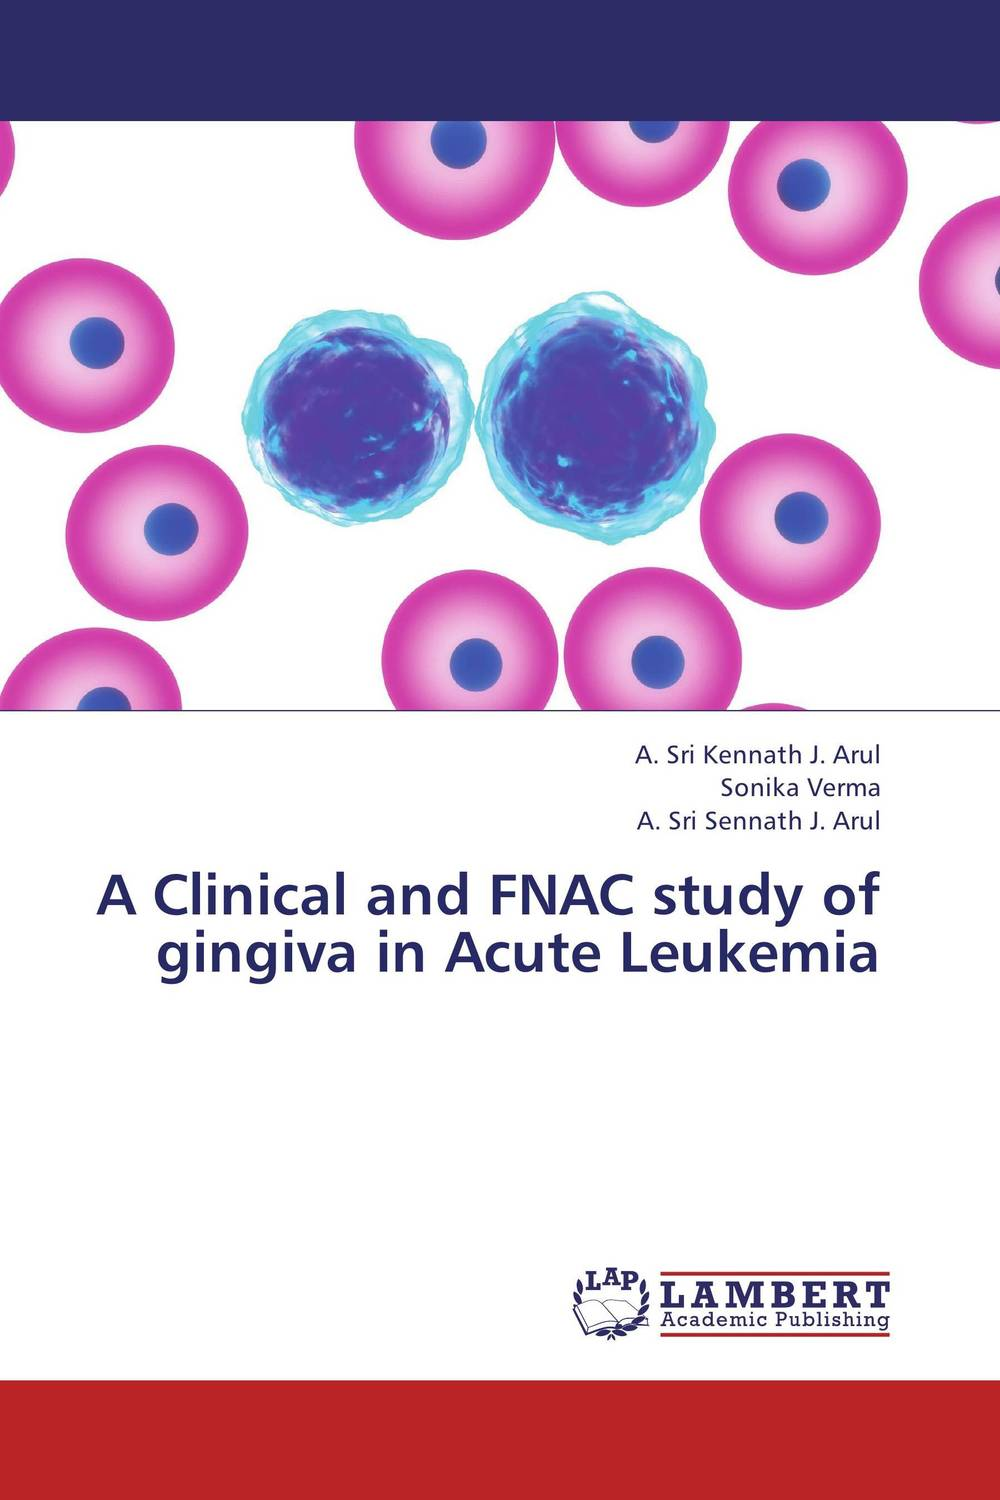 A Clinical and FNAC study of gingiva in Acute Leukemia haptoglobin phenotypes distribution among sudanese leukemic patients